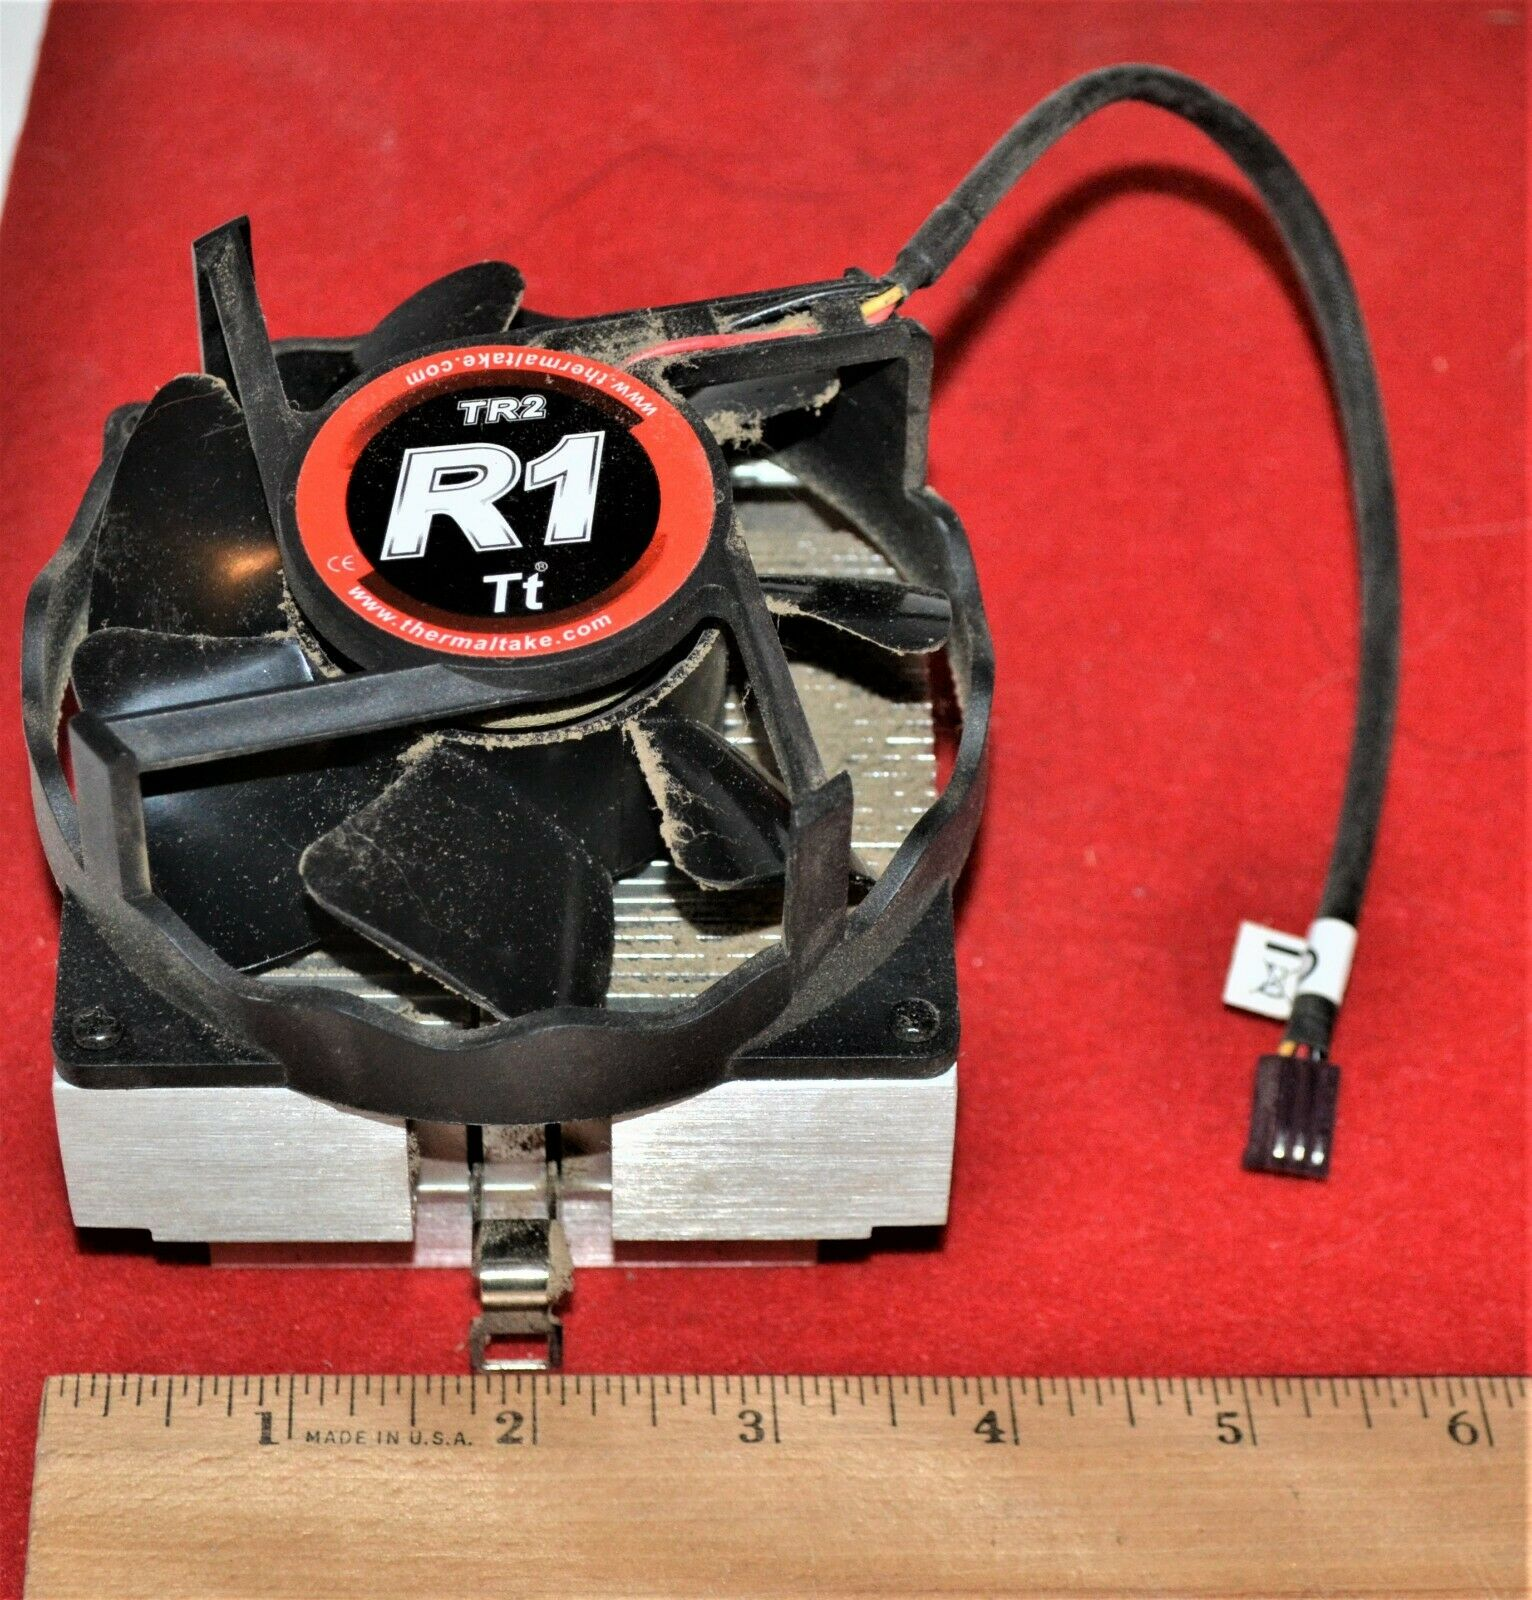 ThermalTake TR2-R1 CPU Heat Sink and Cooling Fan assembly